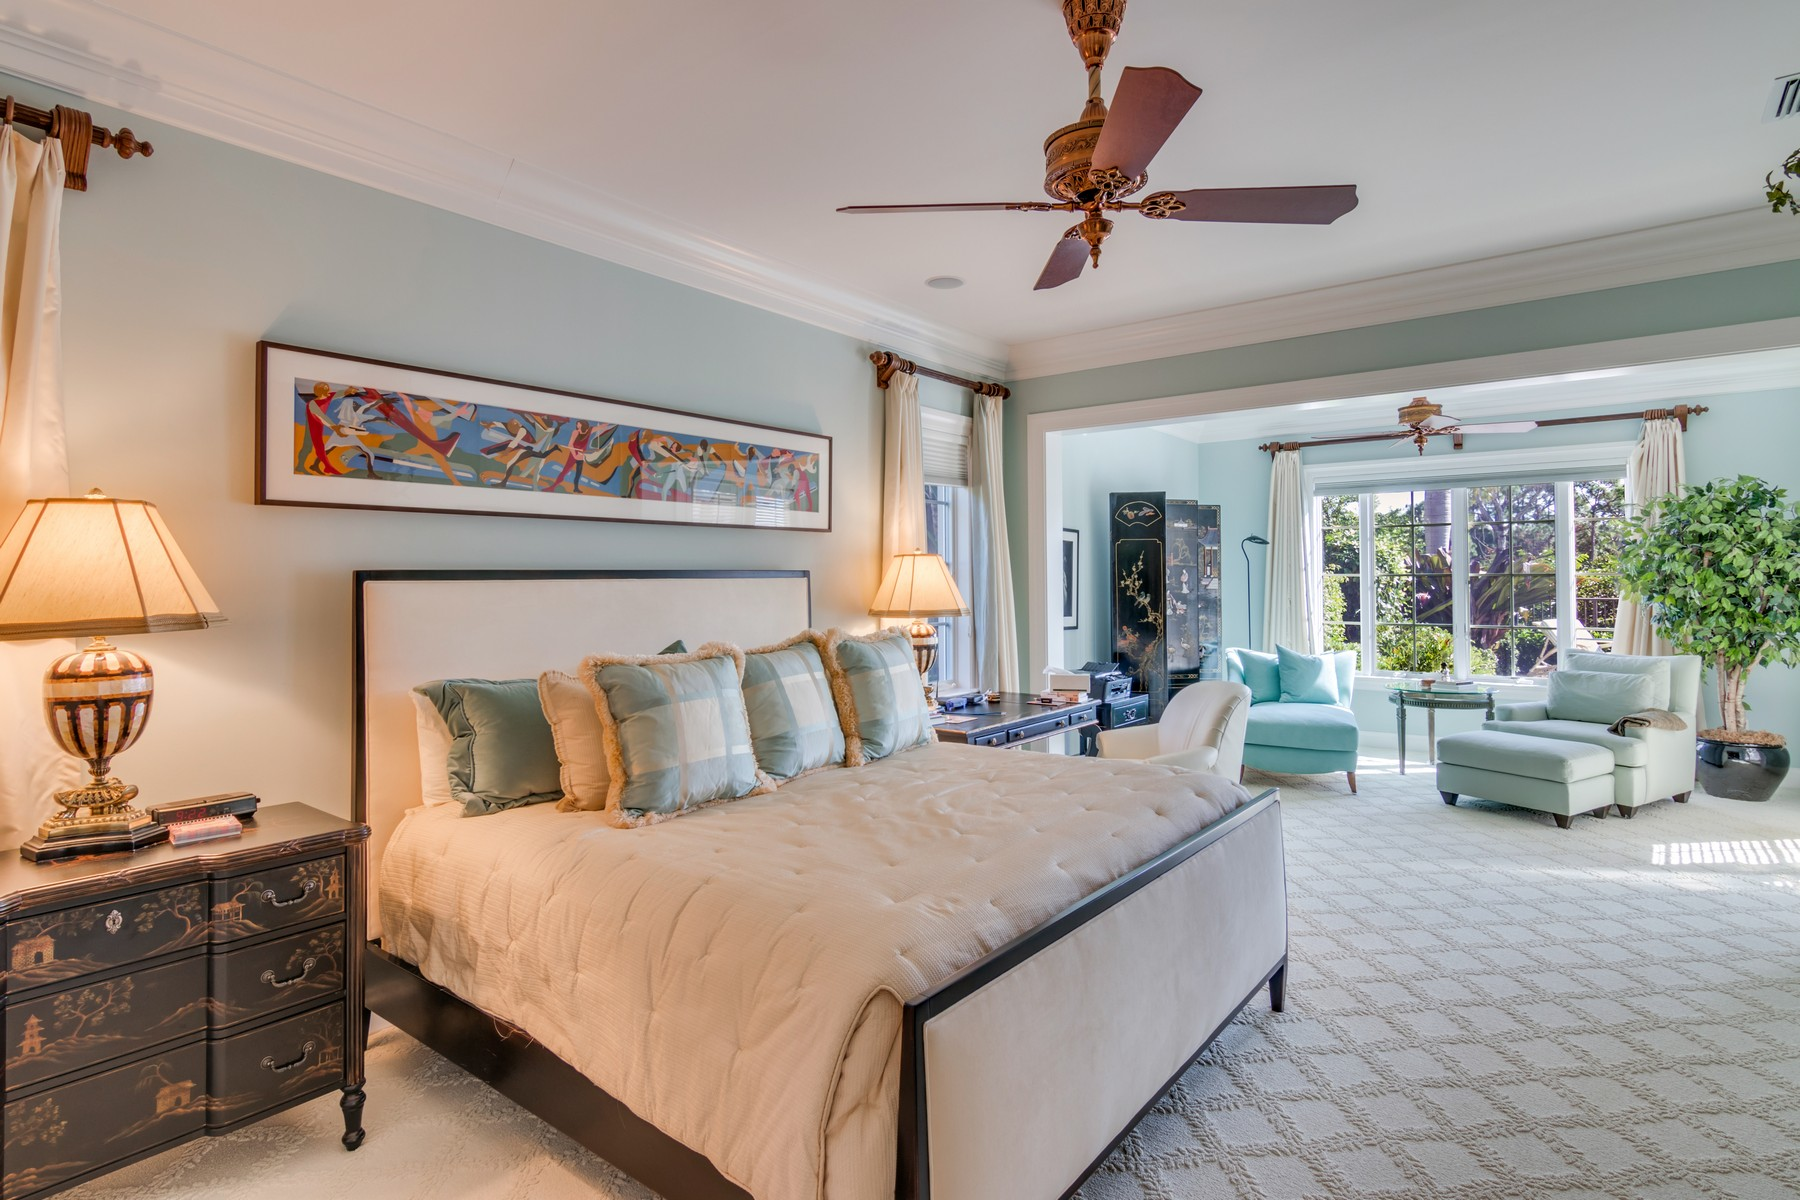 Additional photo for property listing at 449 Red Hawk Drive 449 Red Hawk Drive Jupiter, Florida 33477 United States